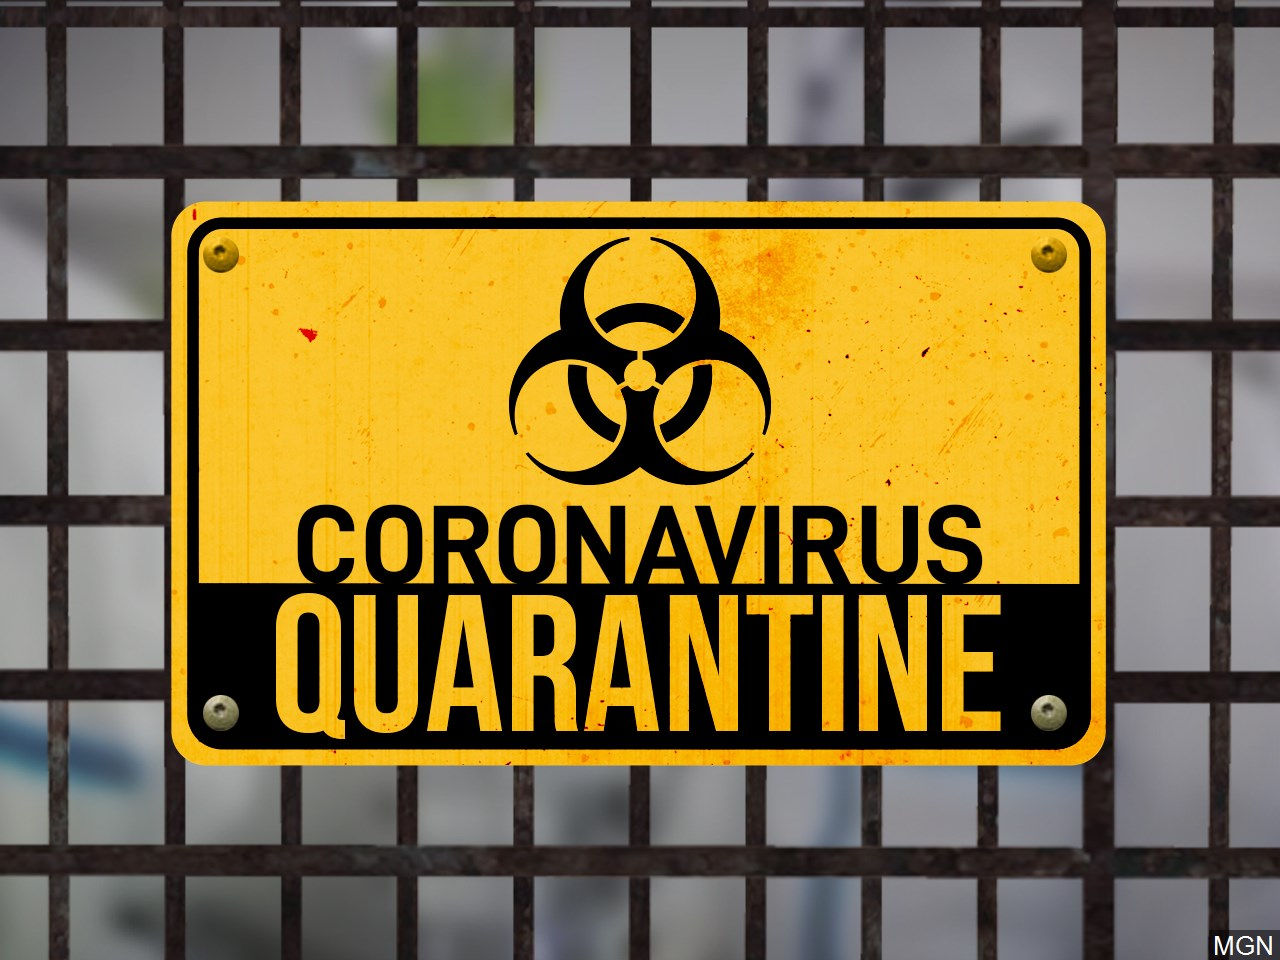 When to start and end quarantine